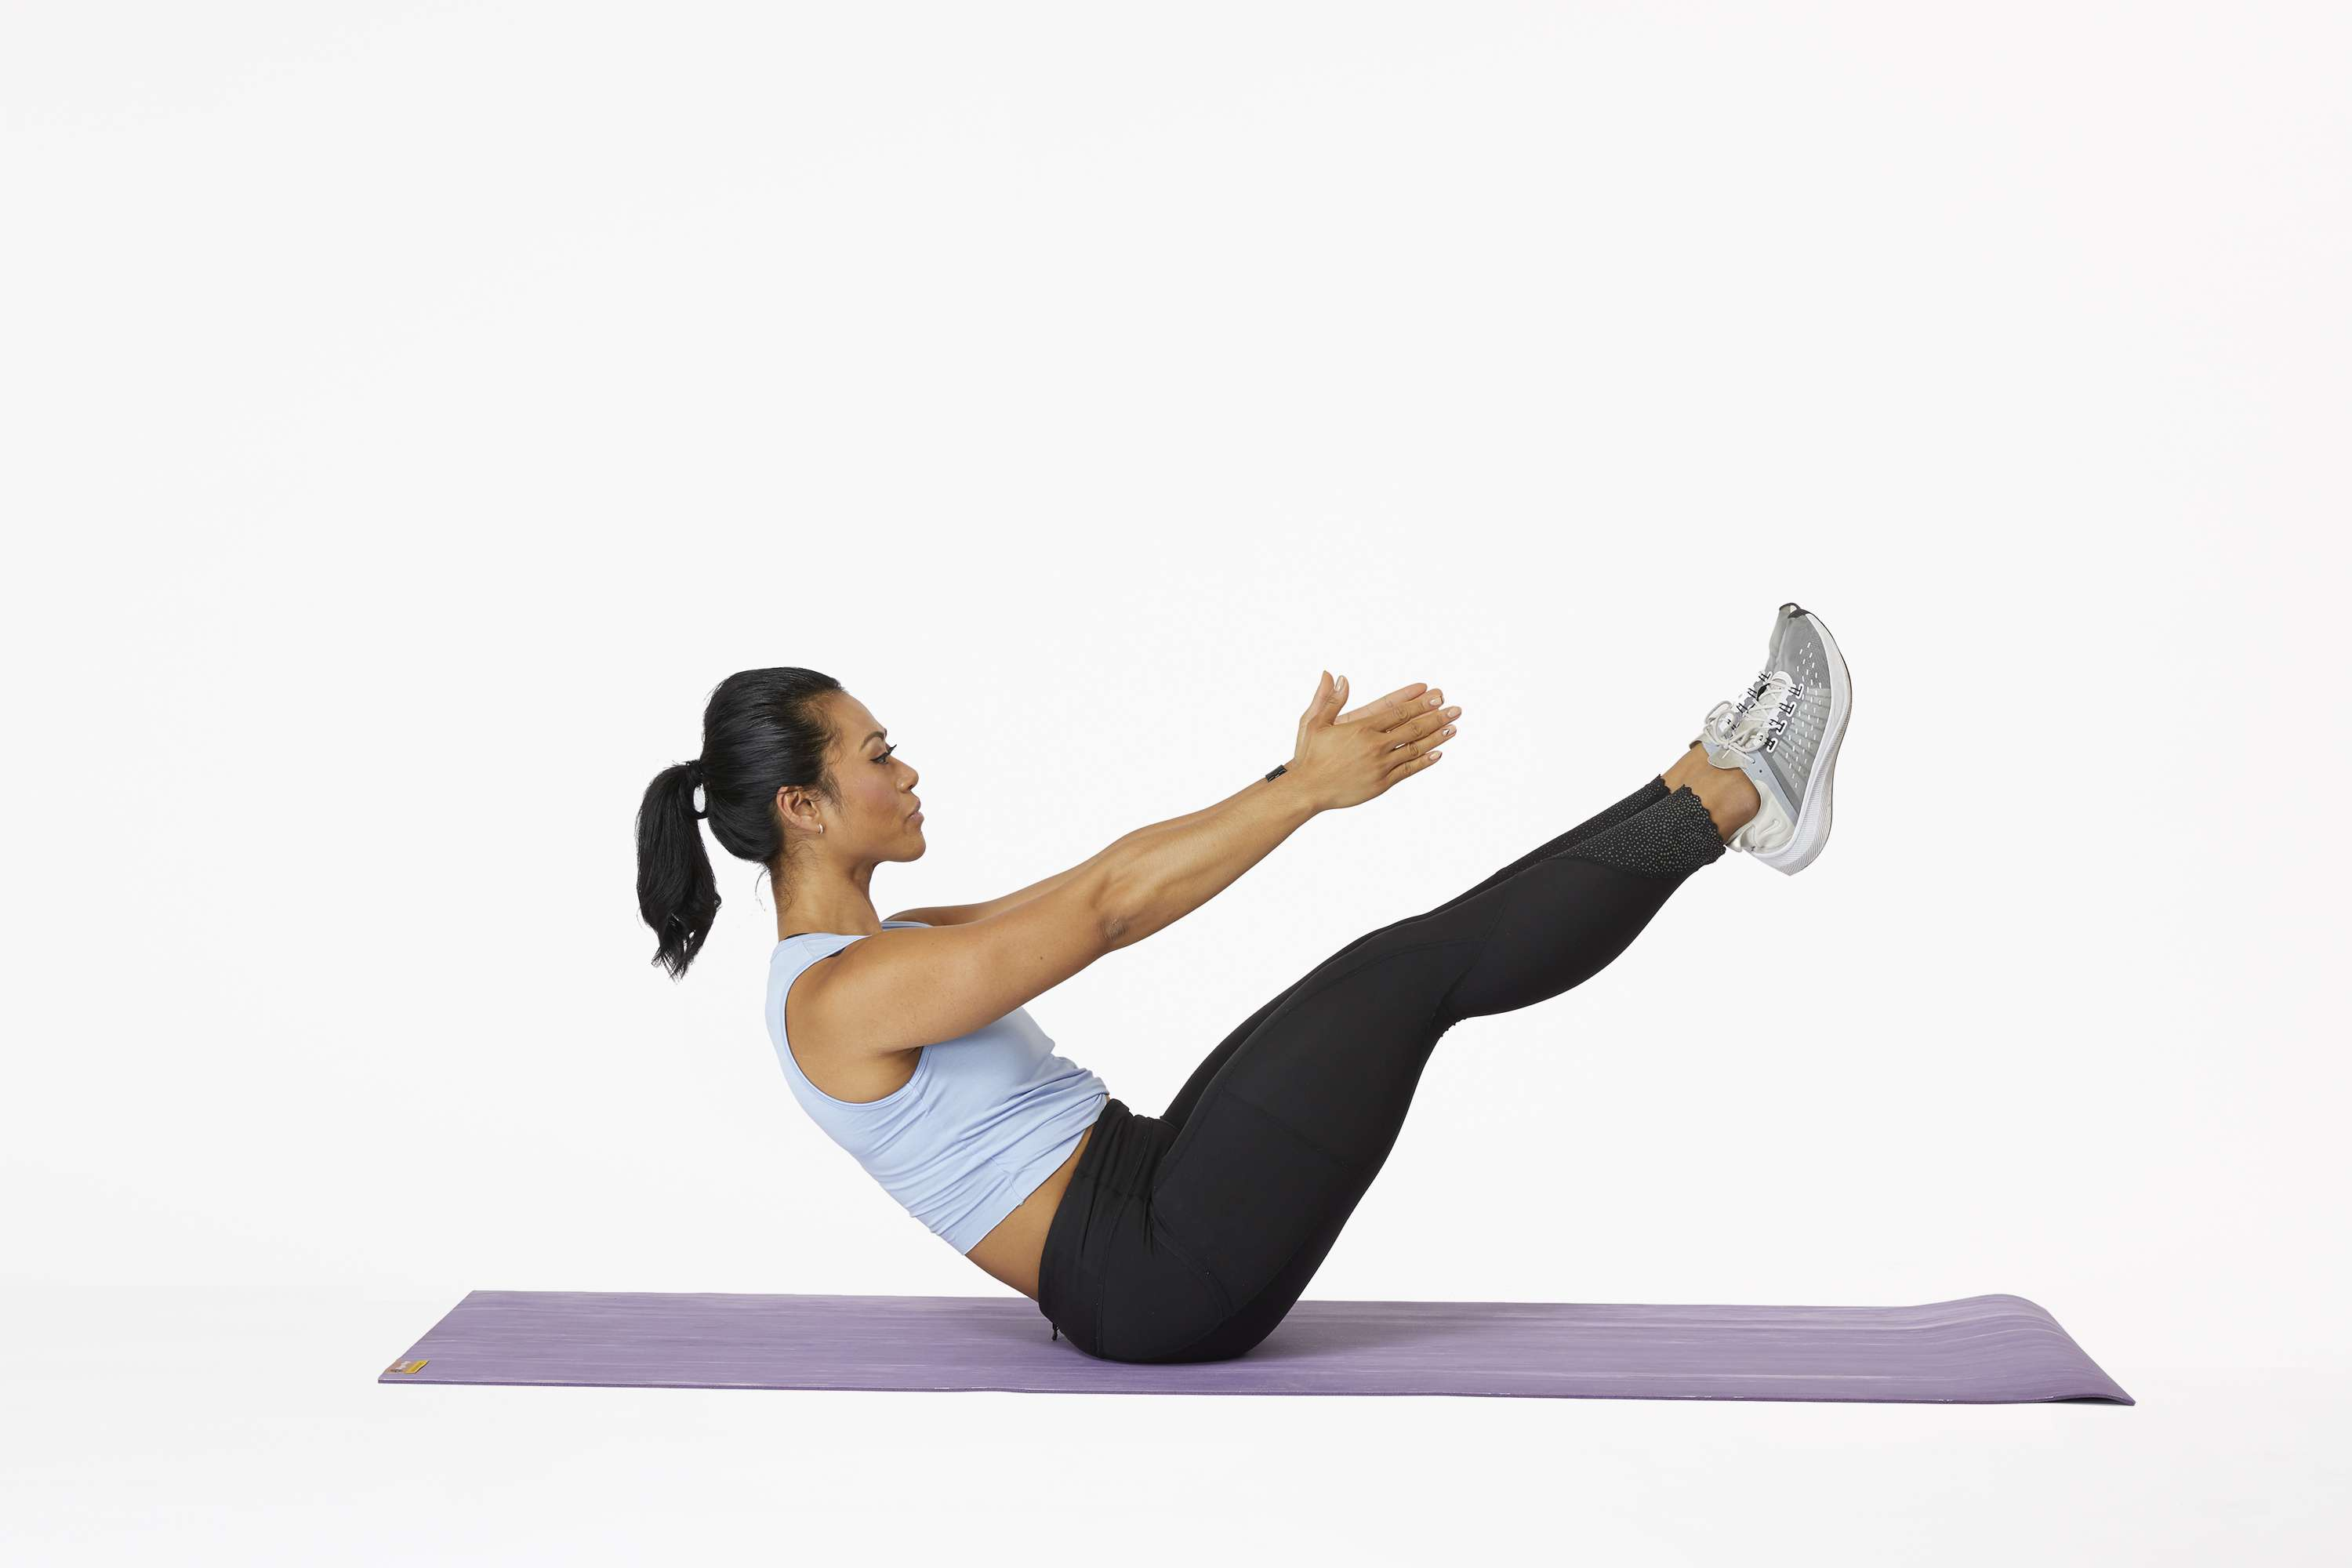 Woman on yoga mat doing a v-sit exercise